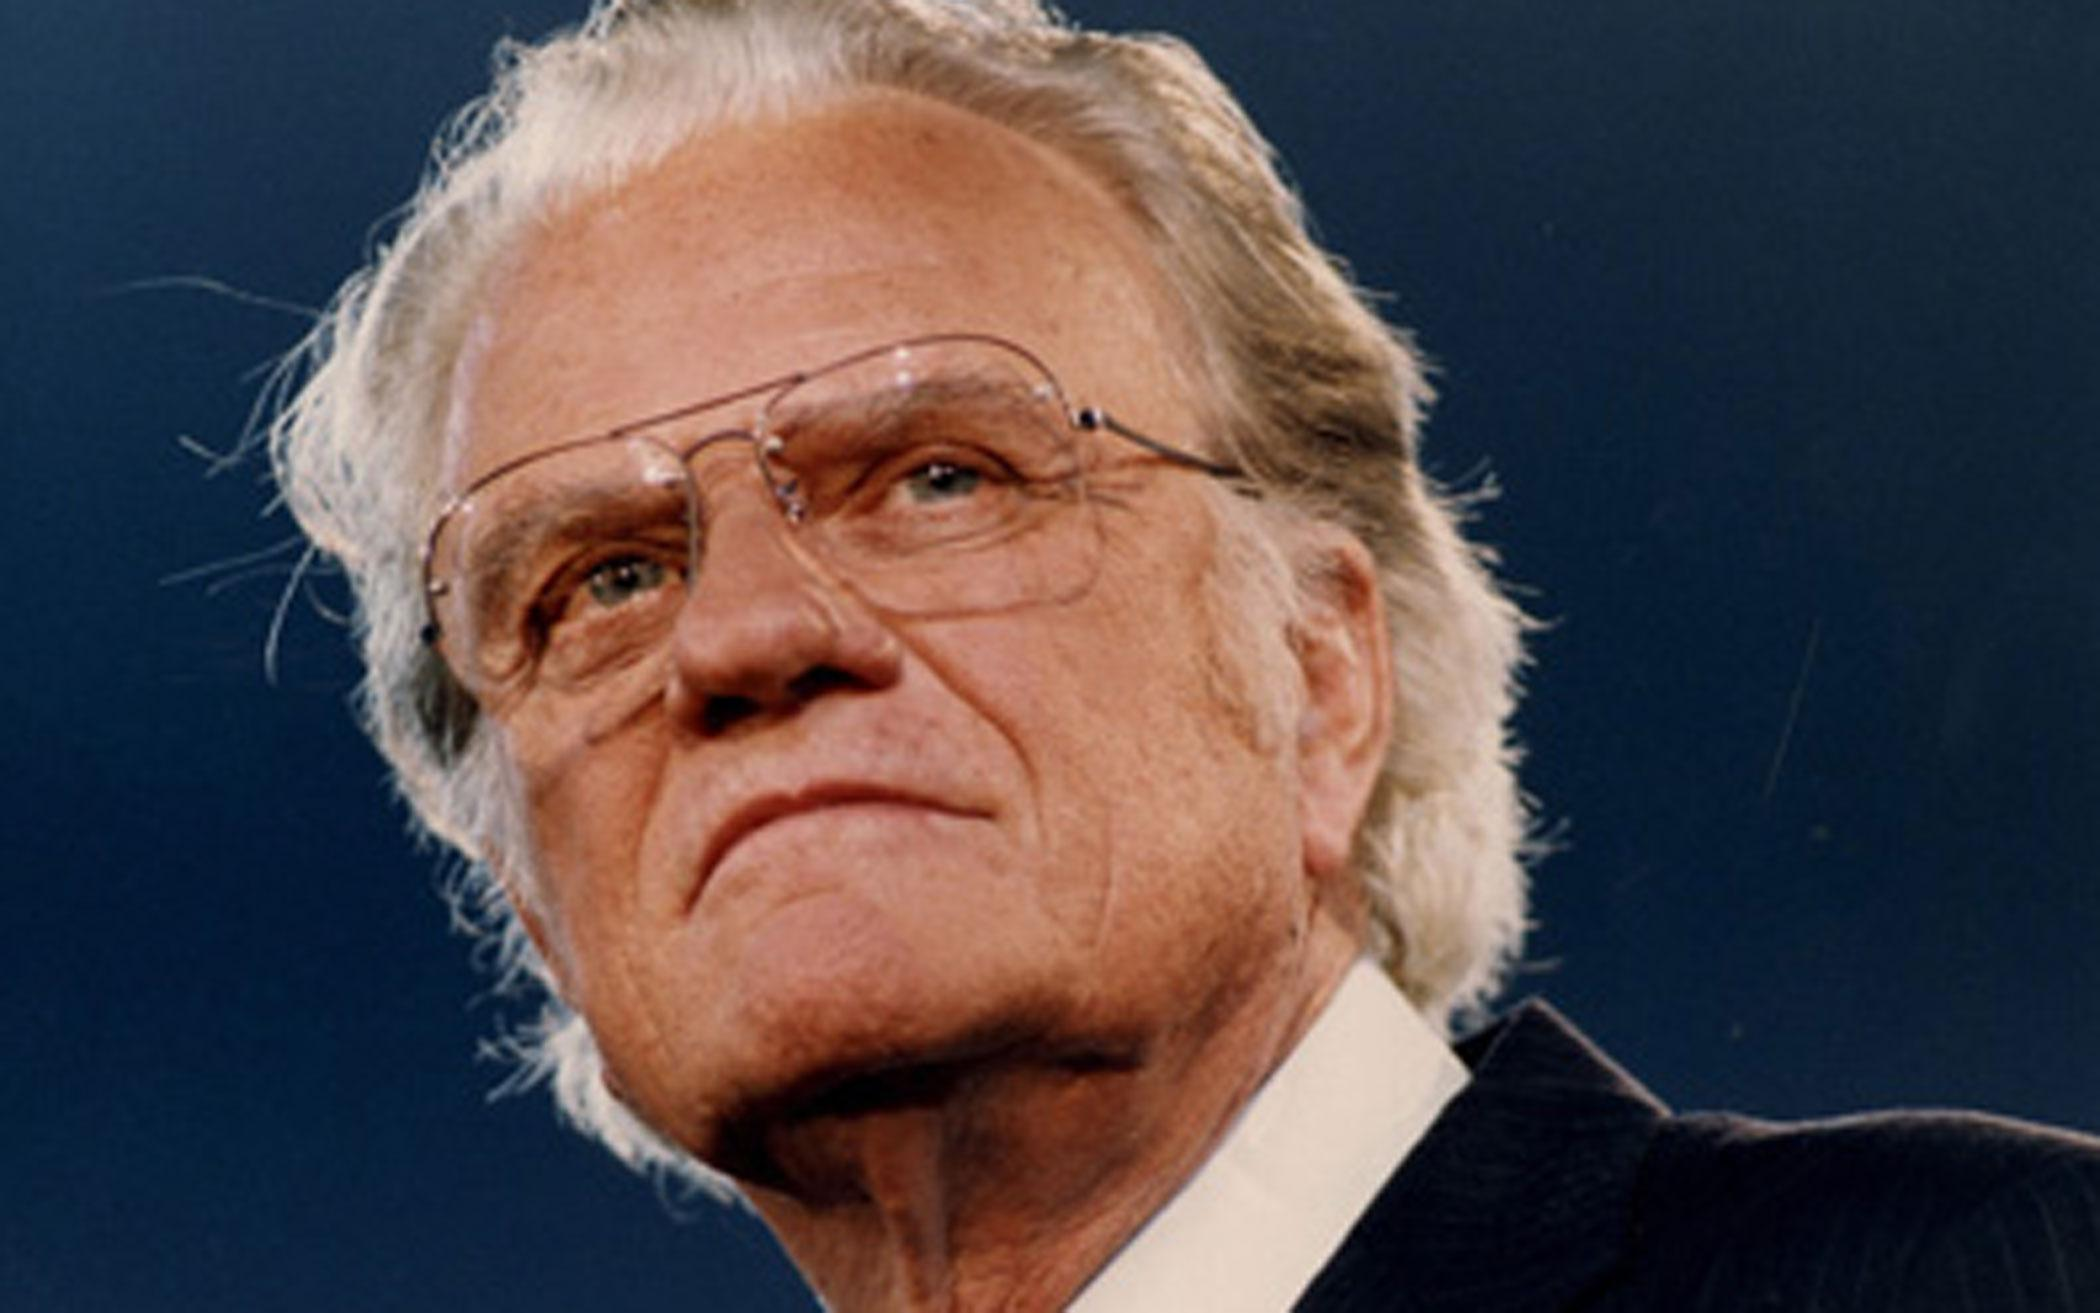 Church Worldwide: Evangelist Billy Graham Dies at 99